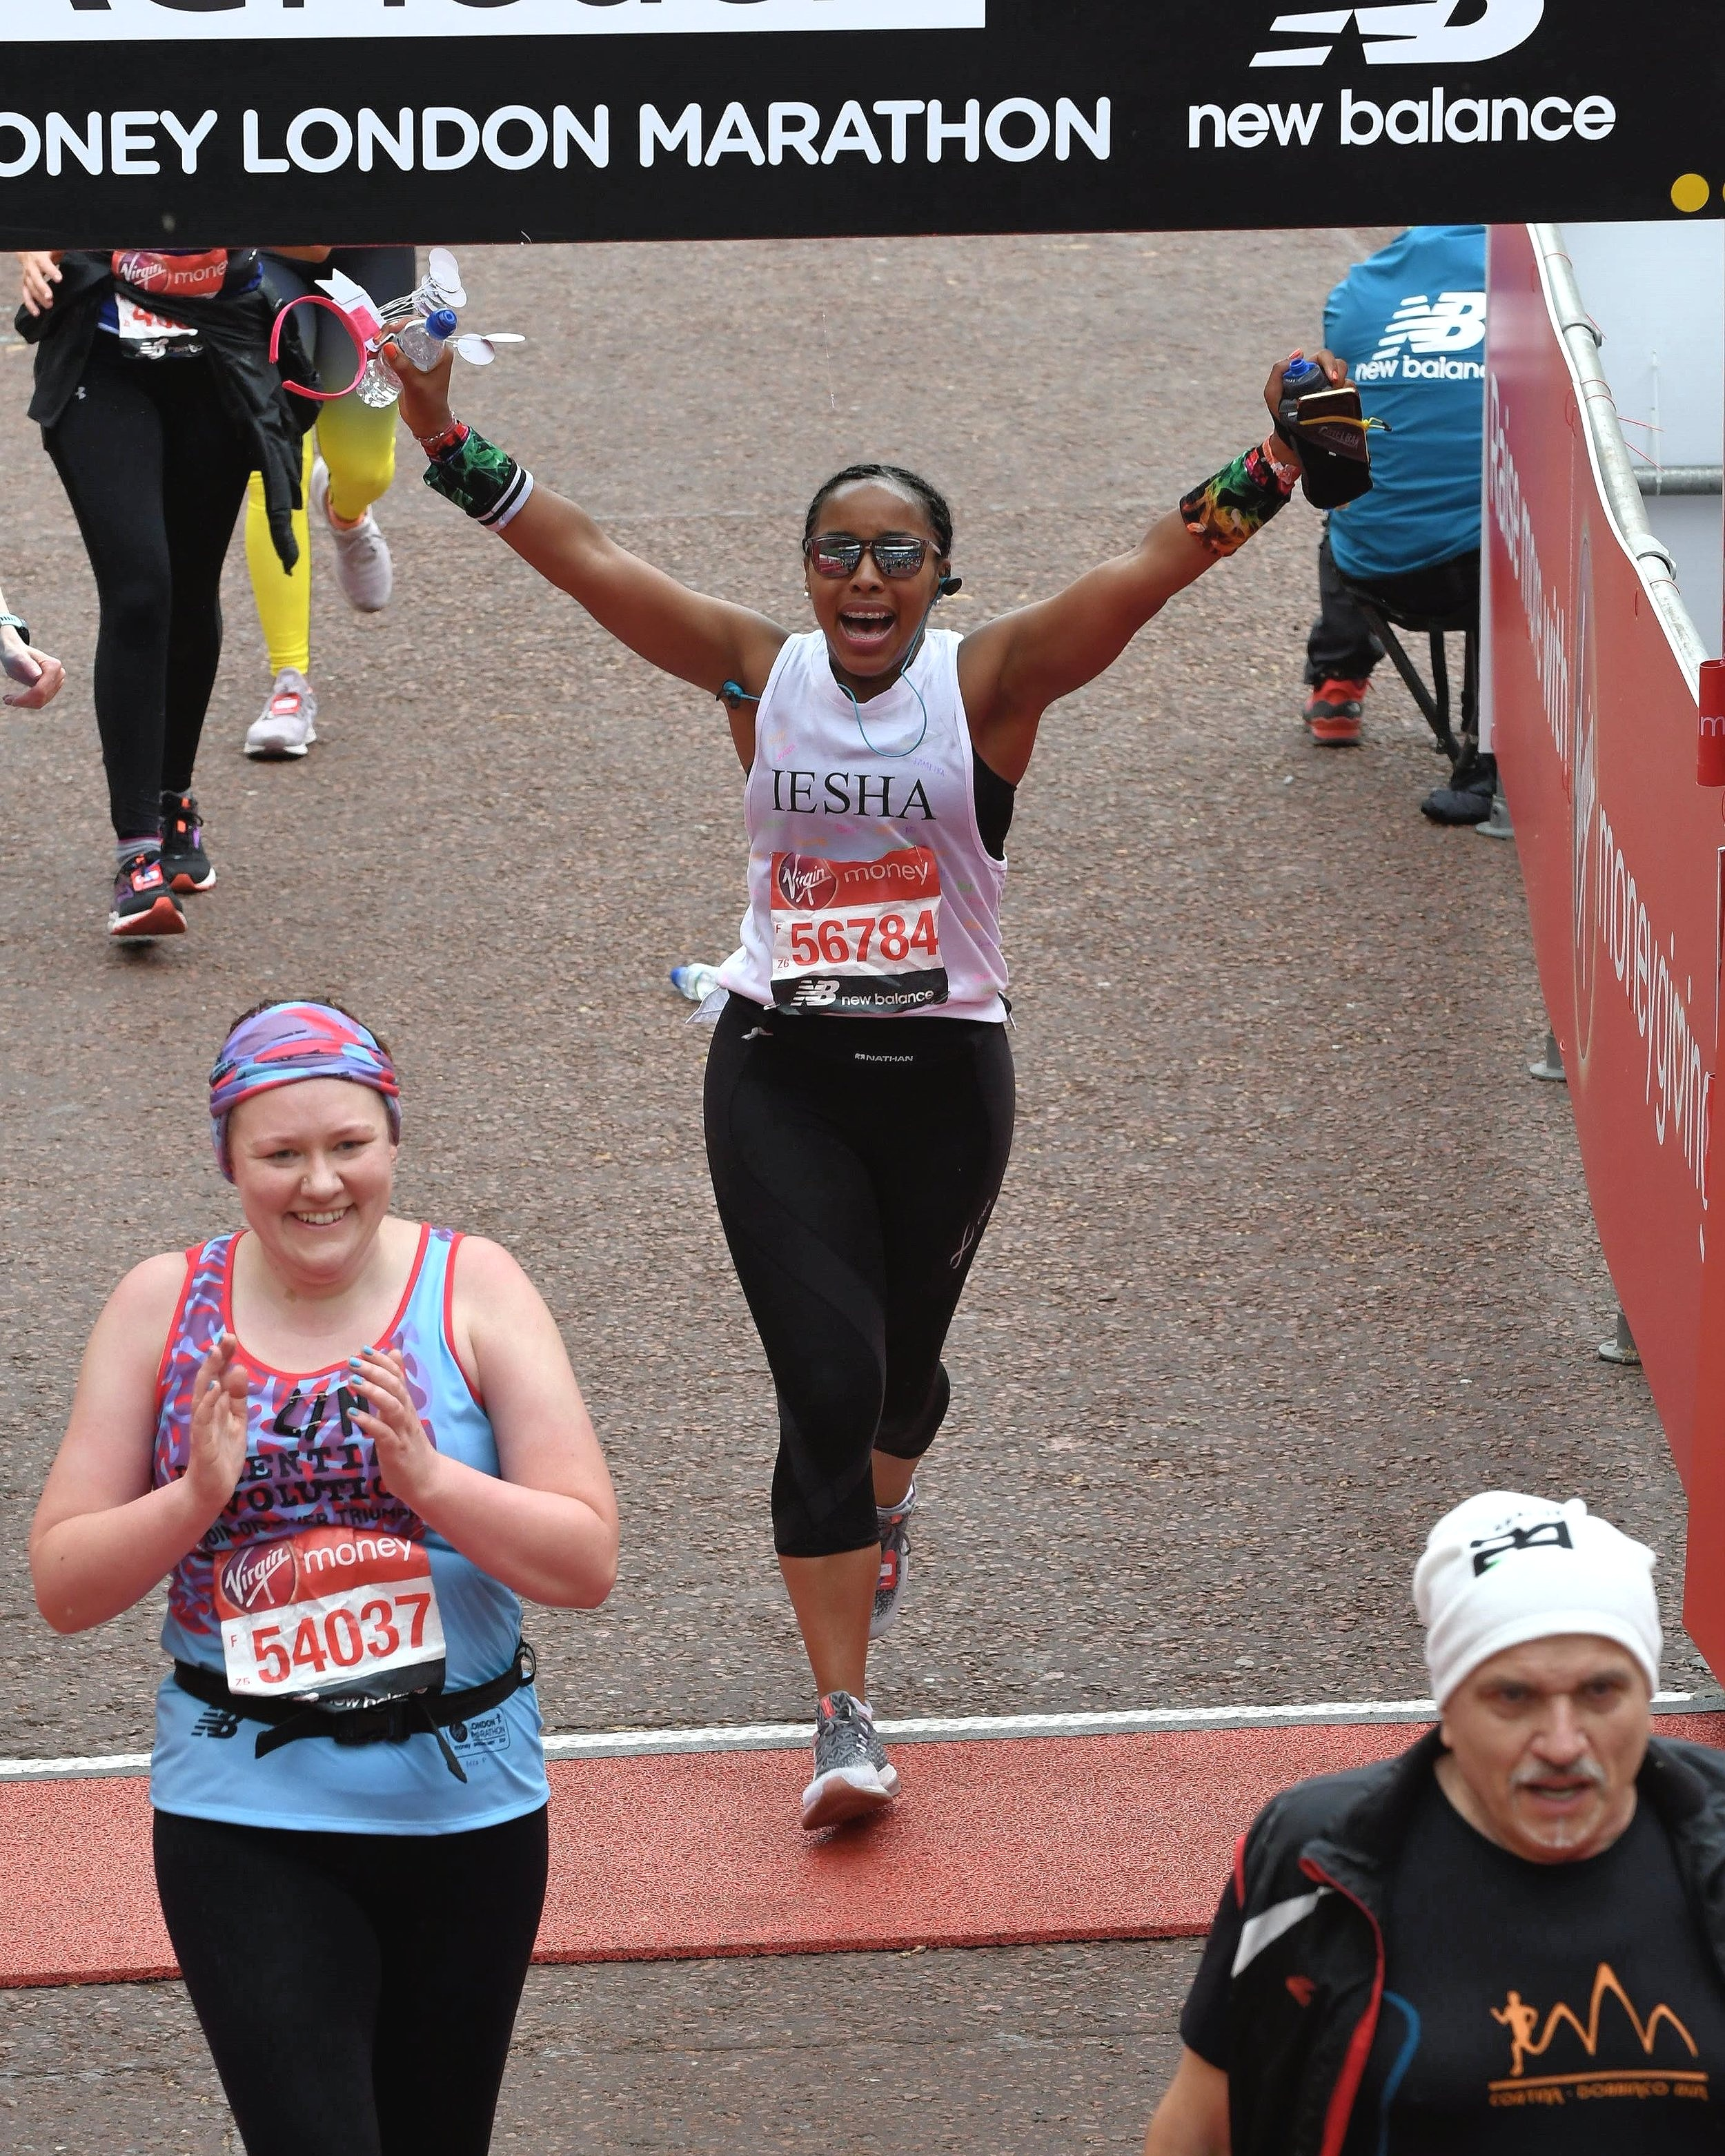 Sprinting across the finish line of the 2019 Virgin Money London Marathon. Photo via Iesha Pankey